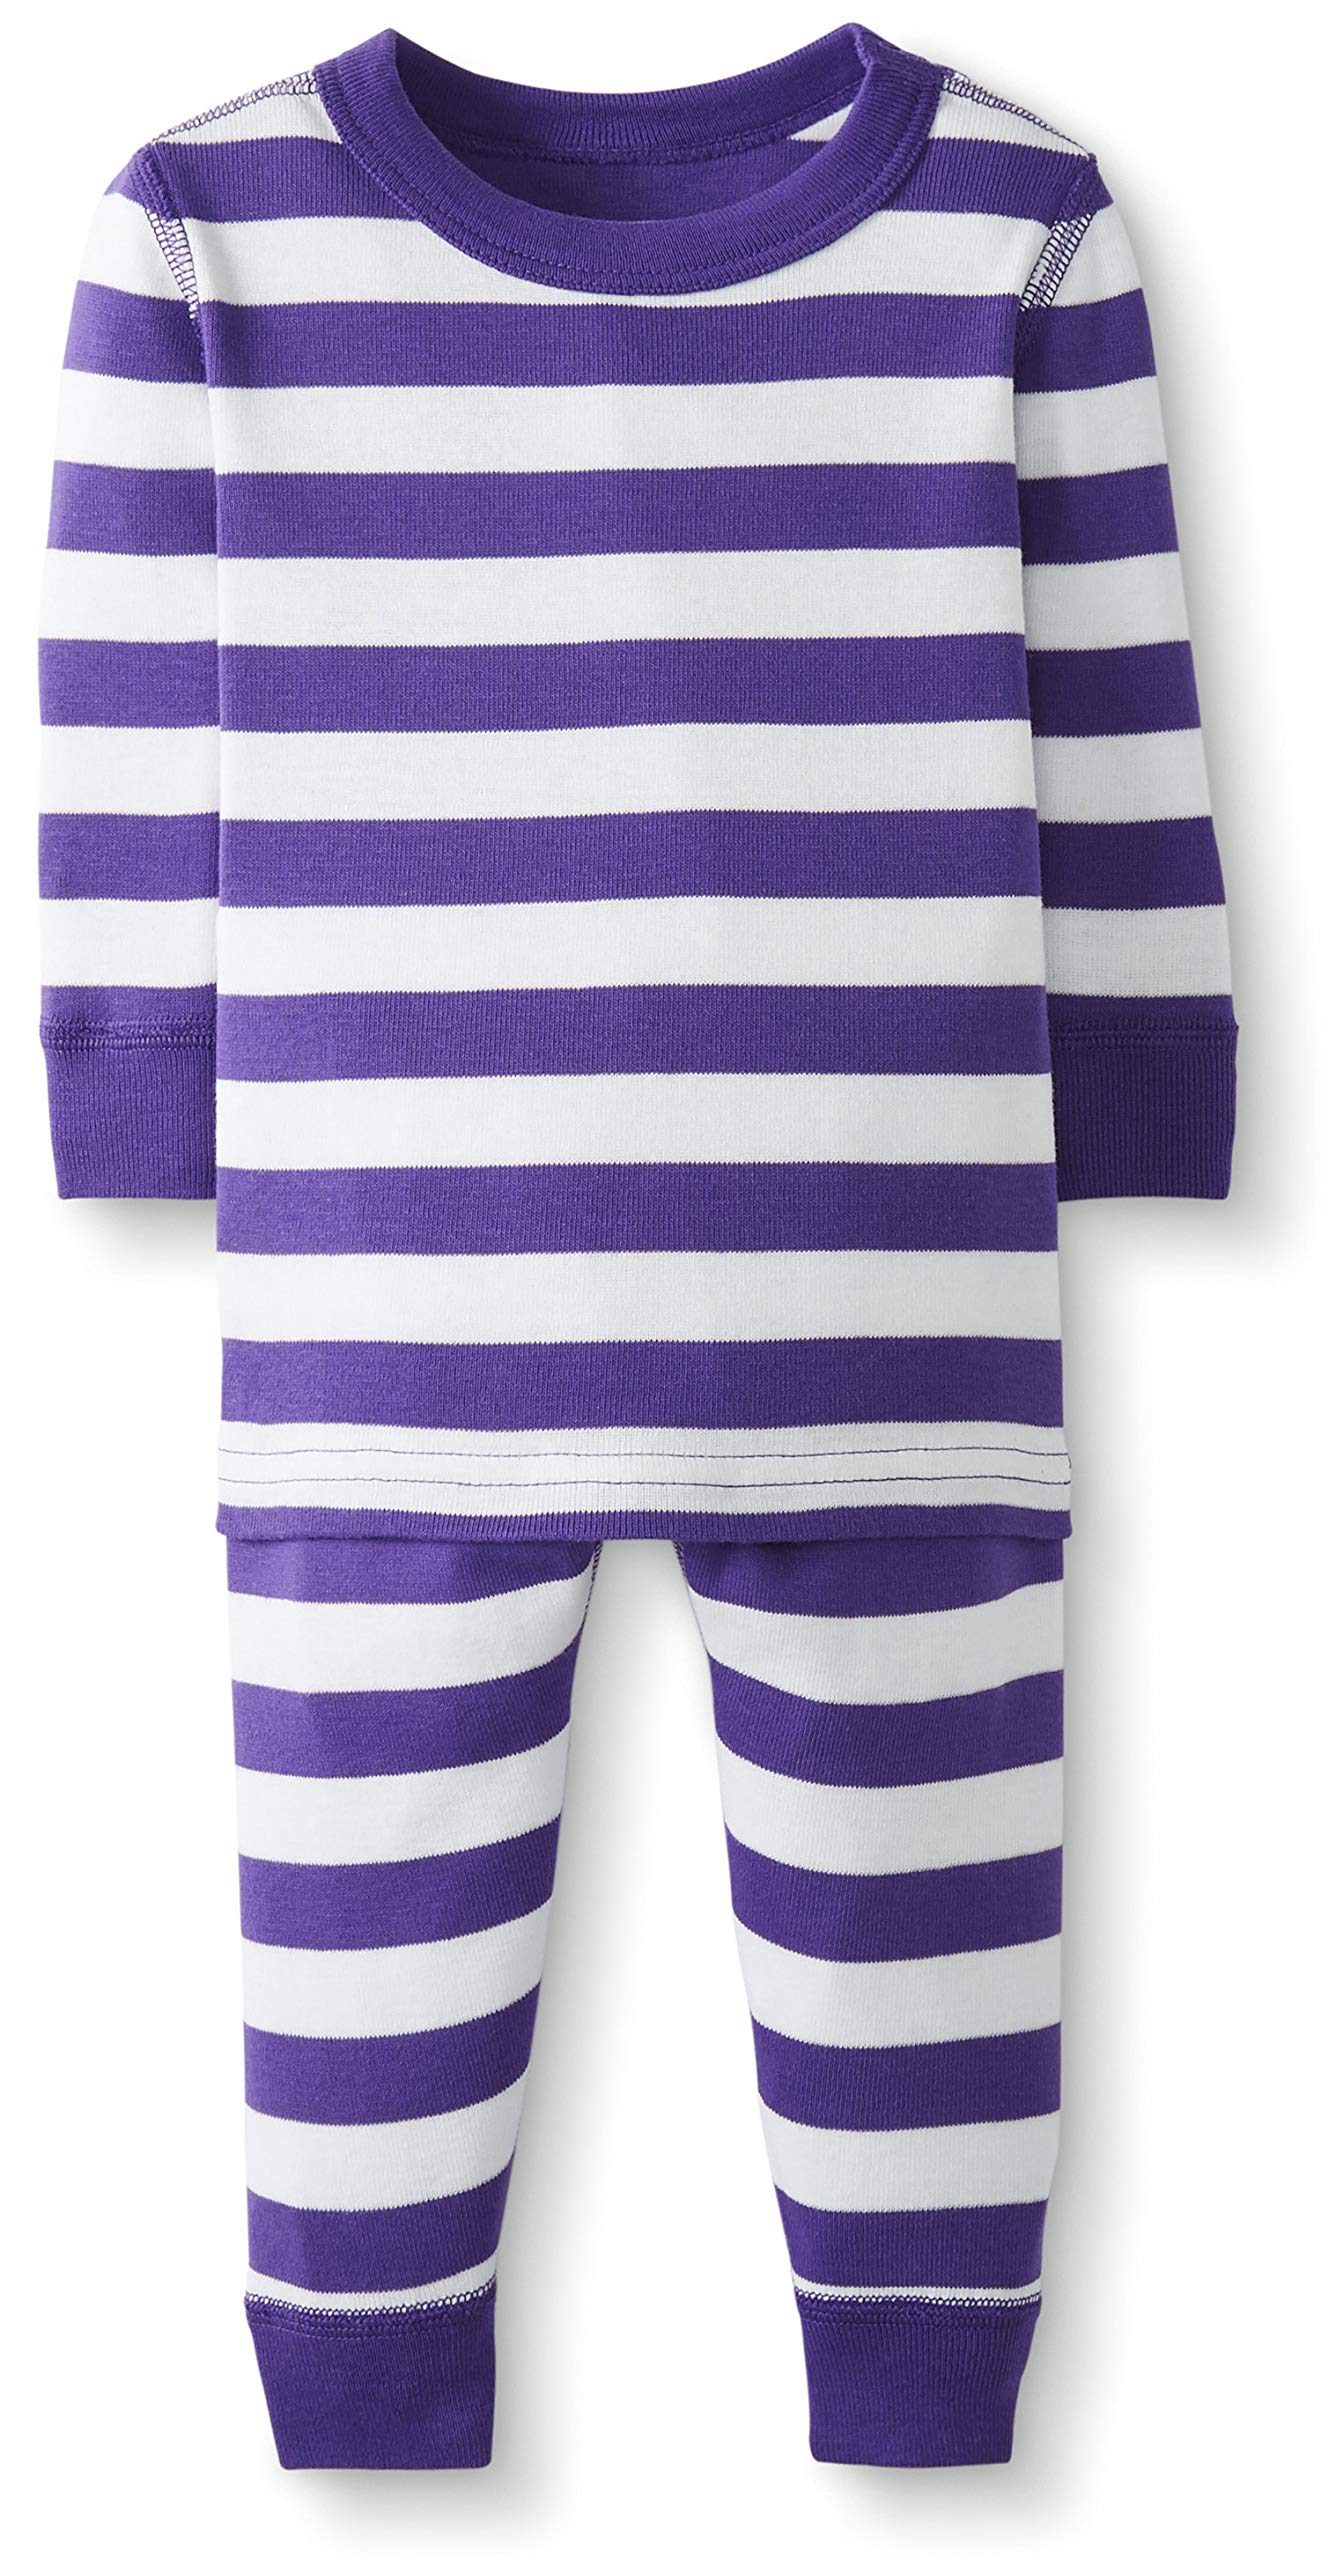 Hanna Andersson Baby/Toddler 2-Piece Organic Cotton Pajama Set Purple Hills/Hanna White-60 by Hanna Andersson